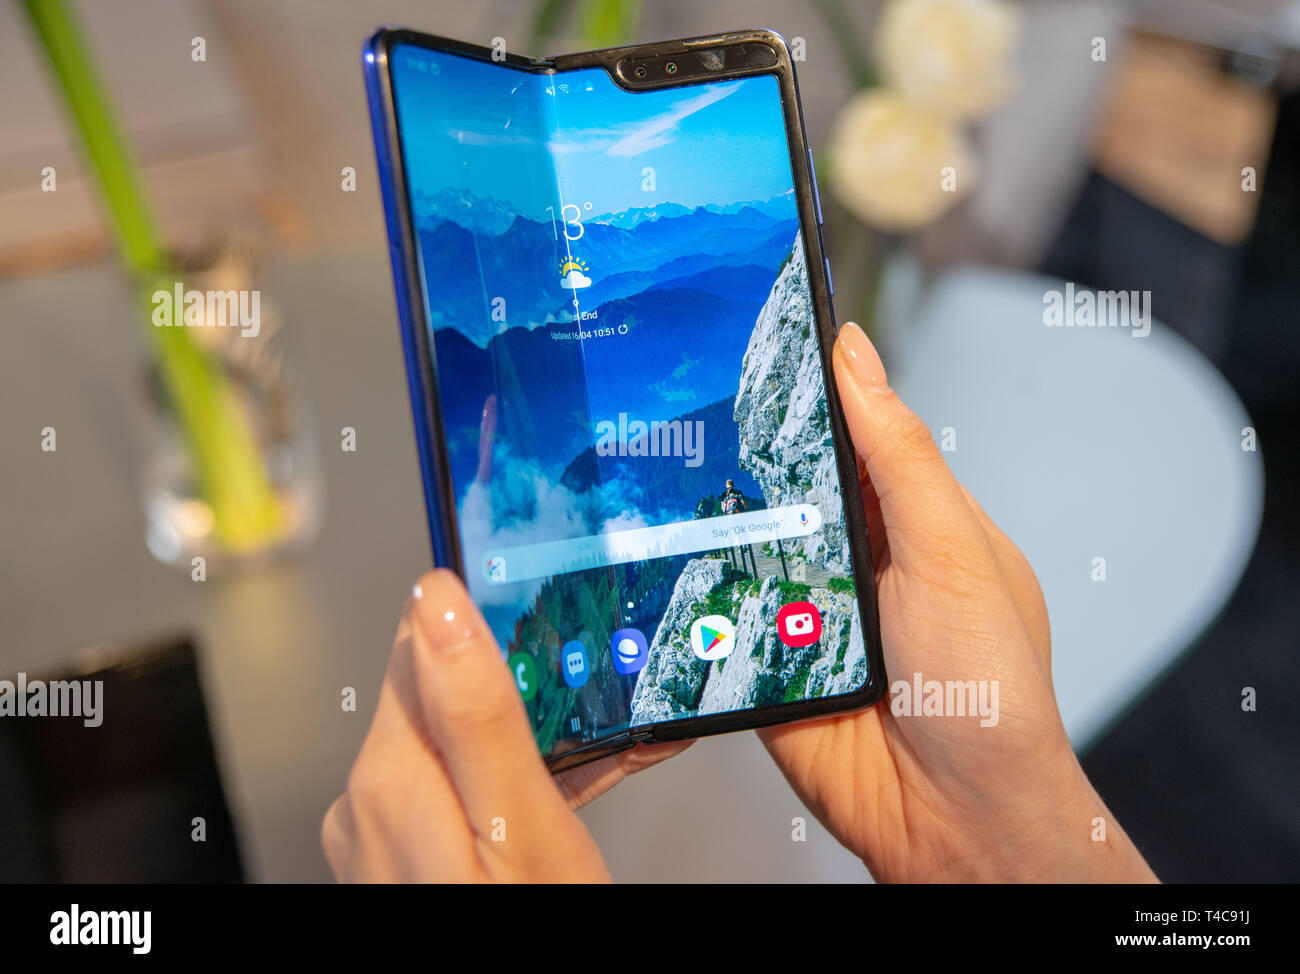 Londres, Royaume-Uni. Apr 16, 2019. Un modèle de production du Samsung Galaxy smartphone Tablette de pliage peut être vu à une présentation. L'appareil Android pour environ 2000 euros est d'être lancés sur le marché européen le 3 mai 2019. (Dpa 'Samsung version série montre de son smartphone-Fold') Crédit : Simon Nagel/dpa/Alamy Live News Photo Stock